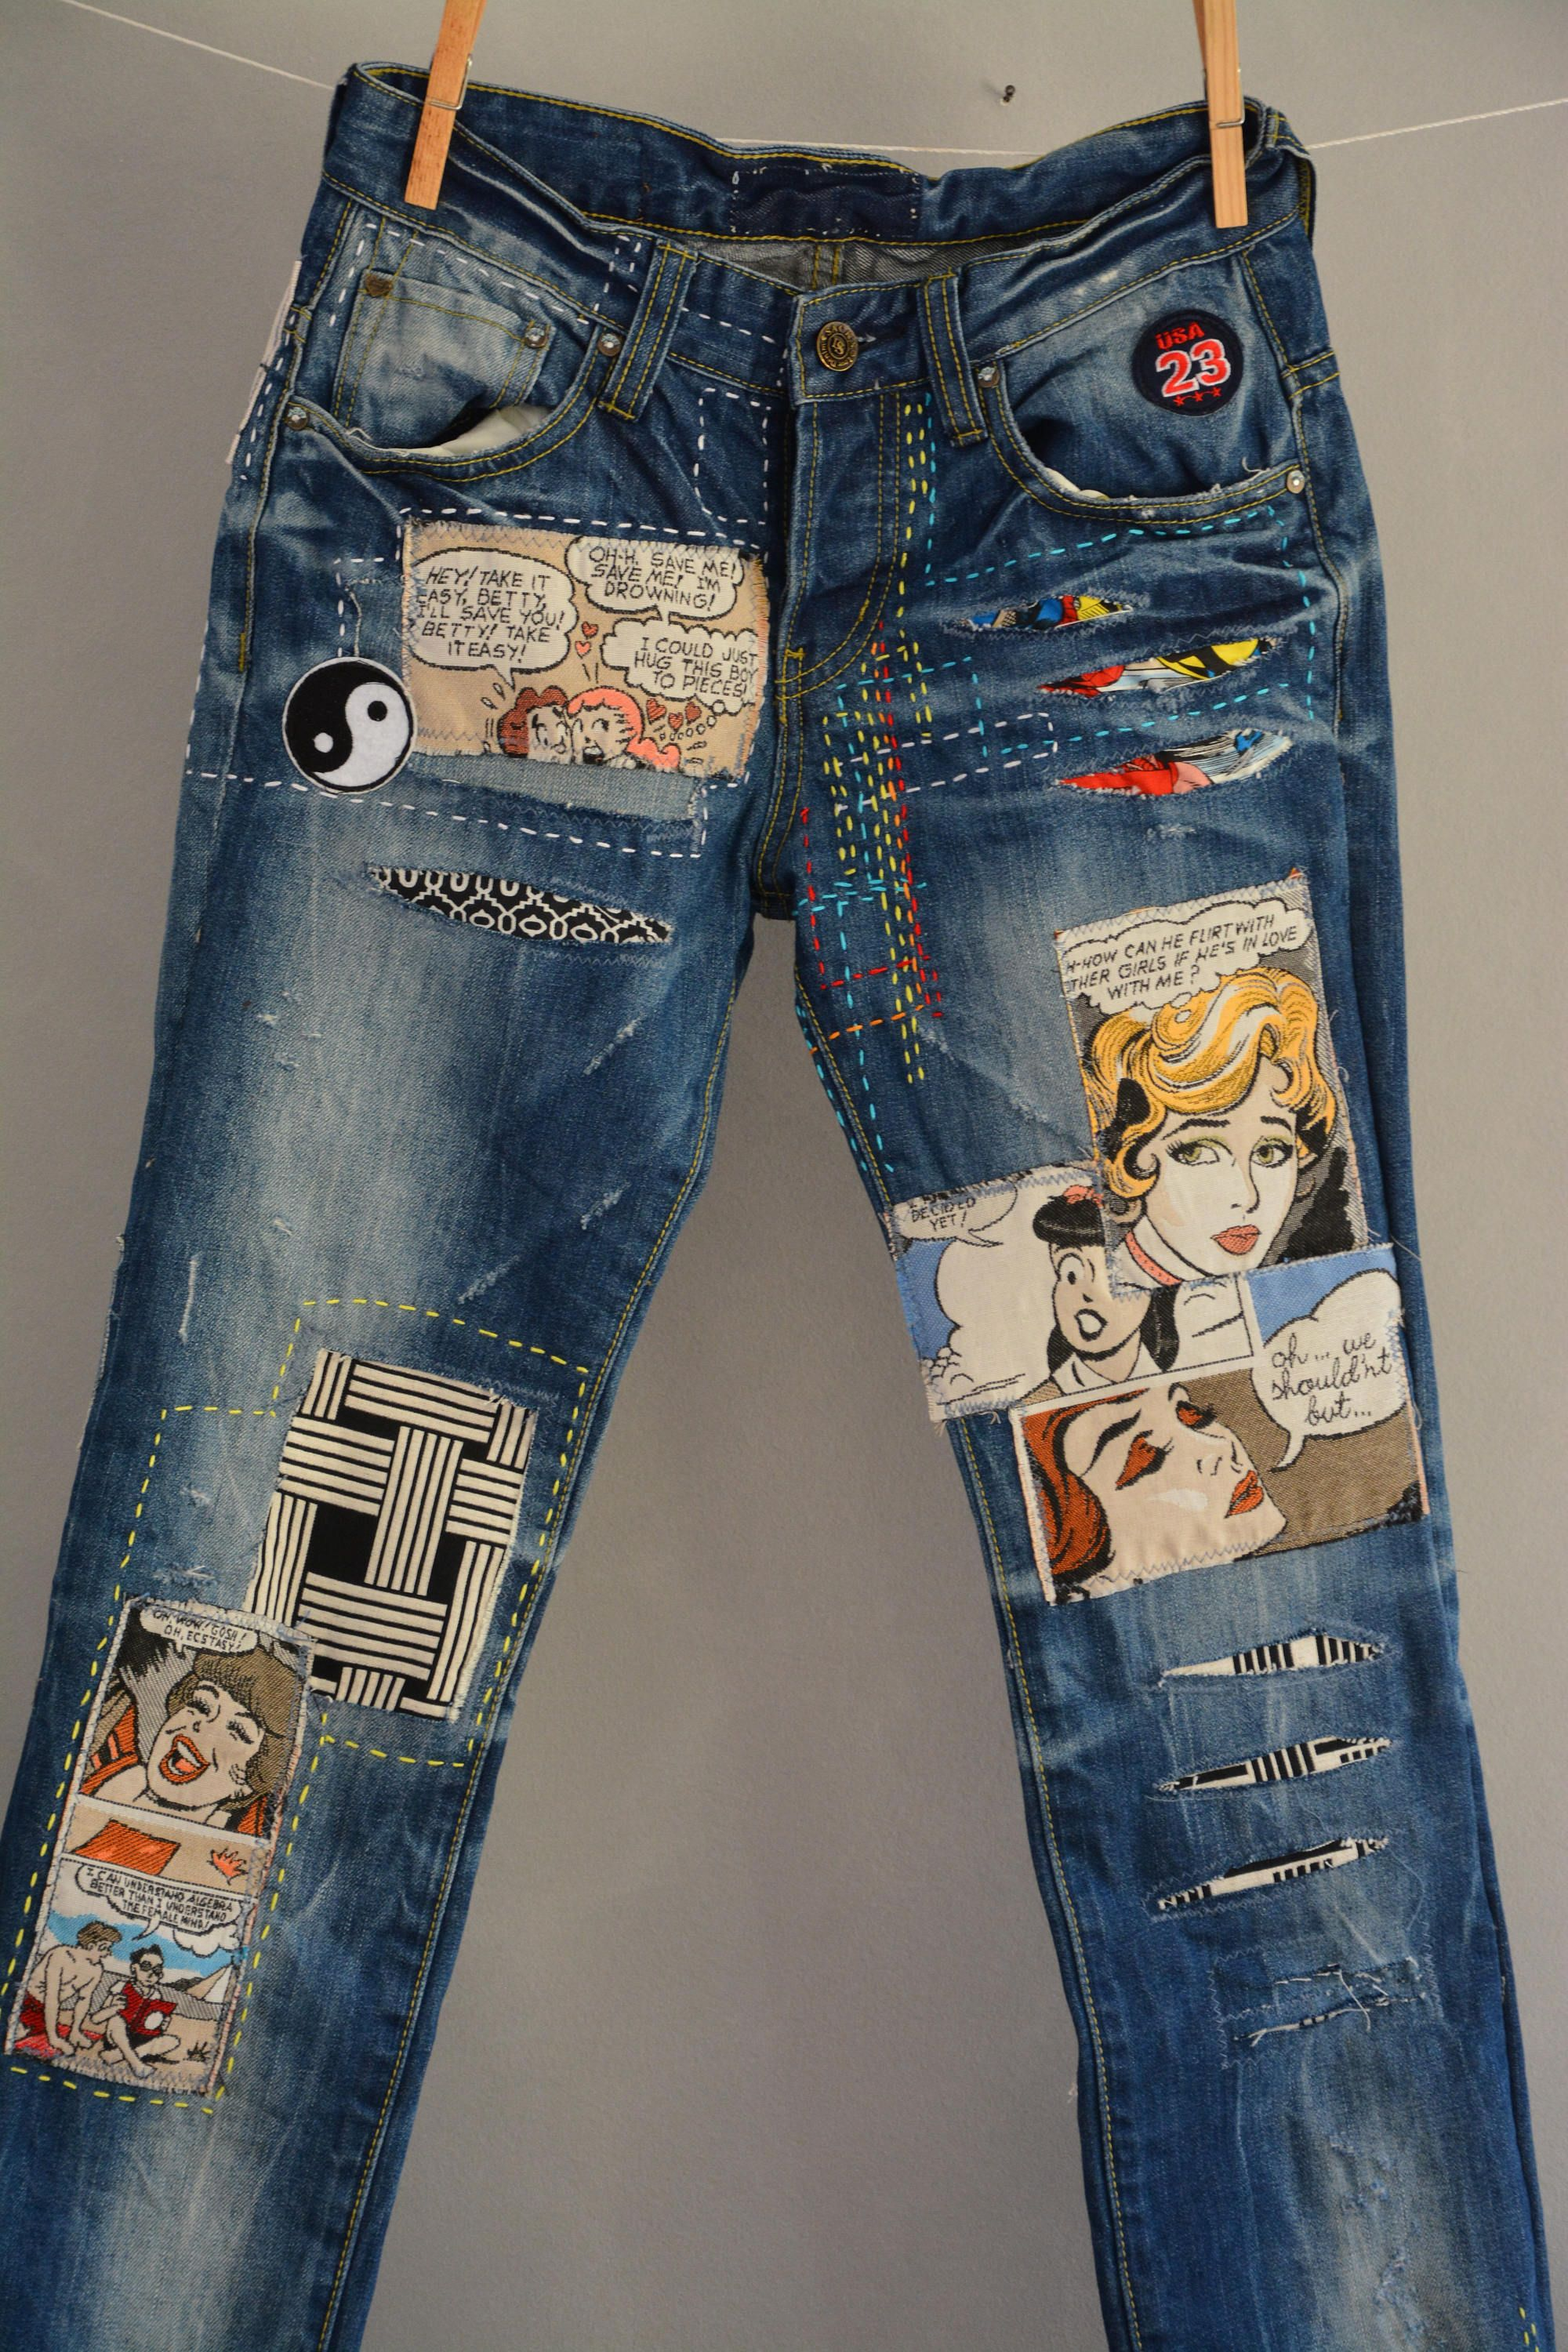 Photo of All SIZES High Waist Destroyed Boyfriend Jeans Distressed and Totally Patched Jeans Women's size 6 High Waisted Mom Jeans// all sizes